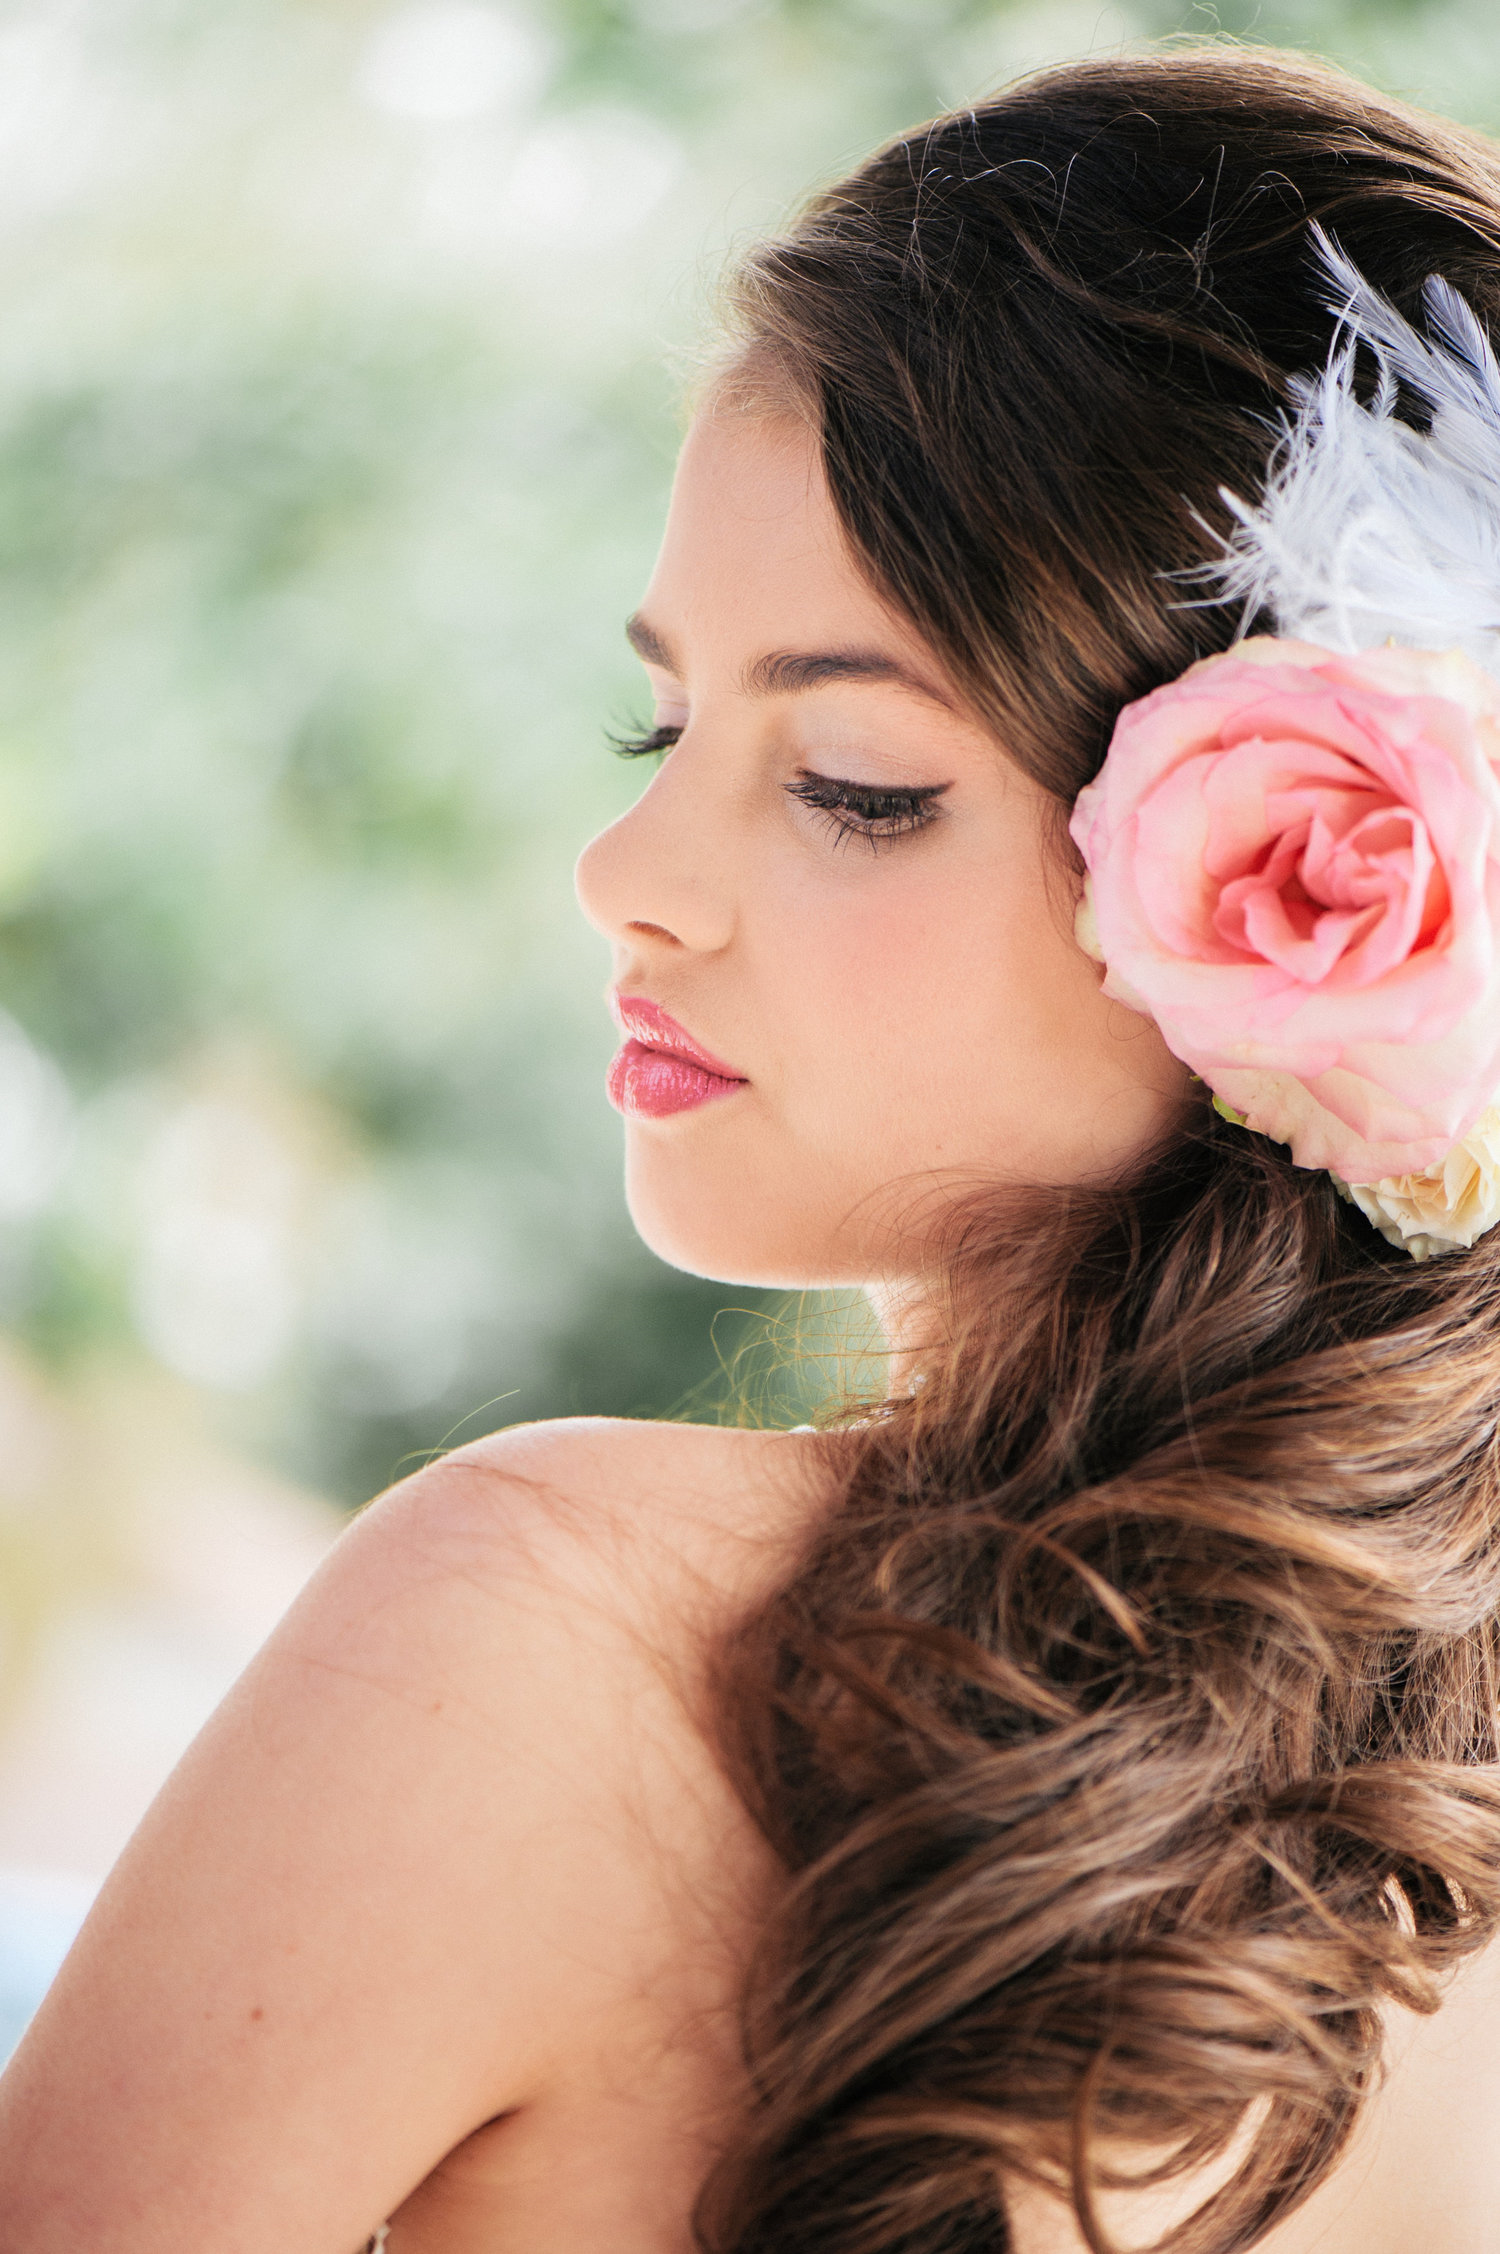 French Styled Shoot Makeup and Hair artistry by Beyond Beautiful by Heather, Savannah, GA. Model: Evie. Image by: Alison Epps Photography, Savannah, GA.